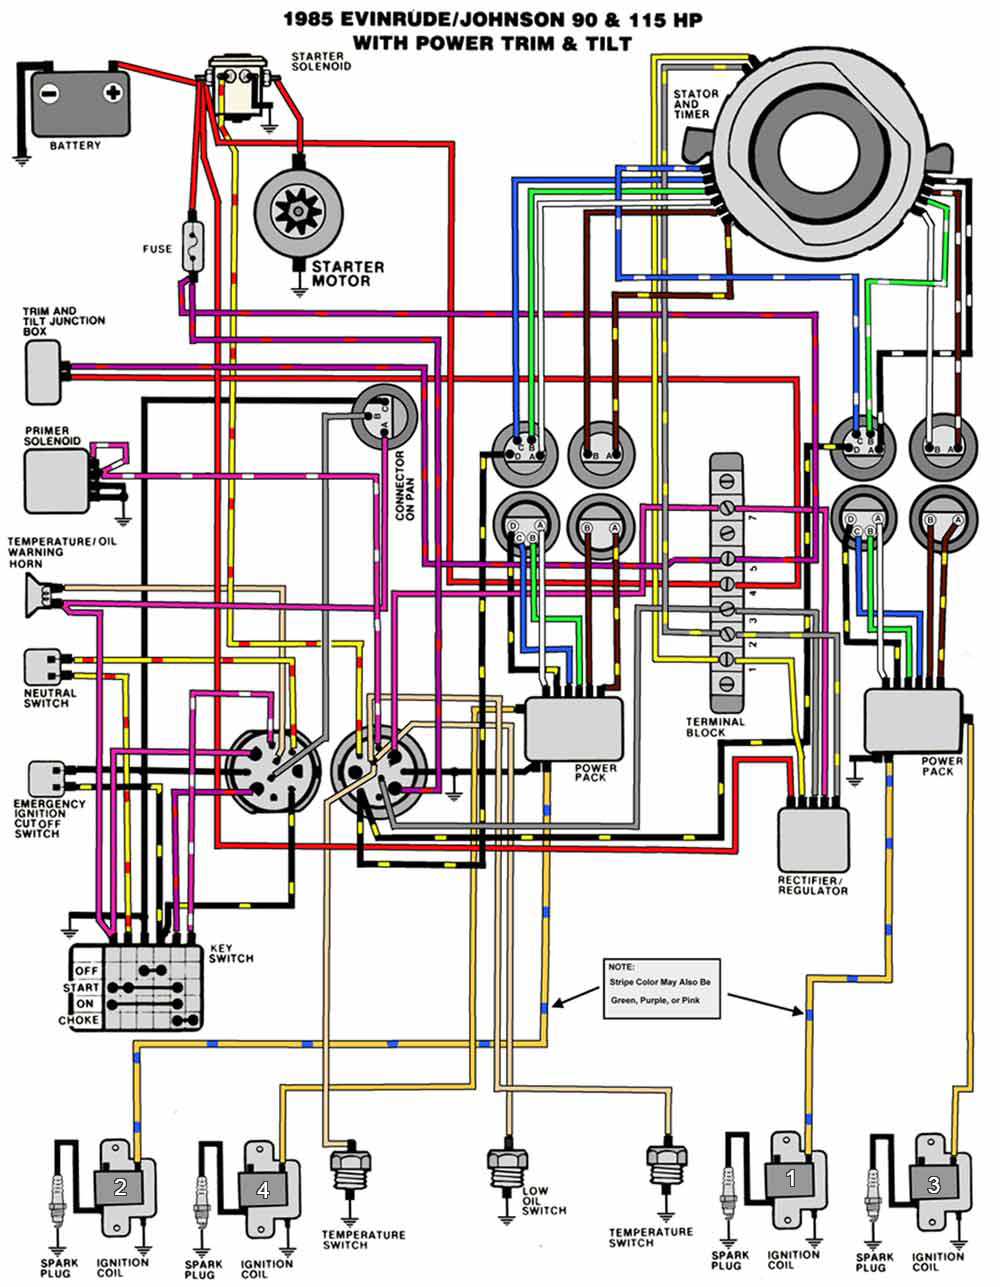 1985_90_115TnT mastertech marine evinrude johnson outboard wiring diagrams omc wiring harness diagram at bakdesigns.co